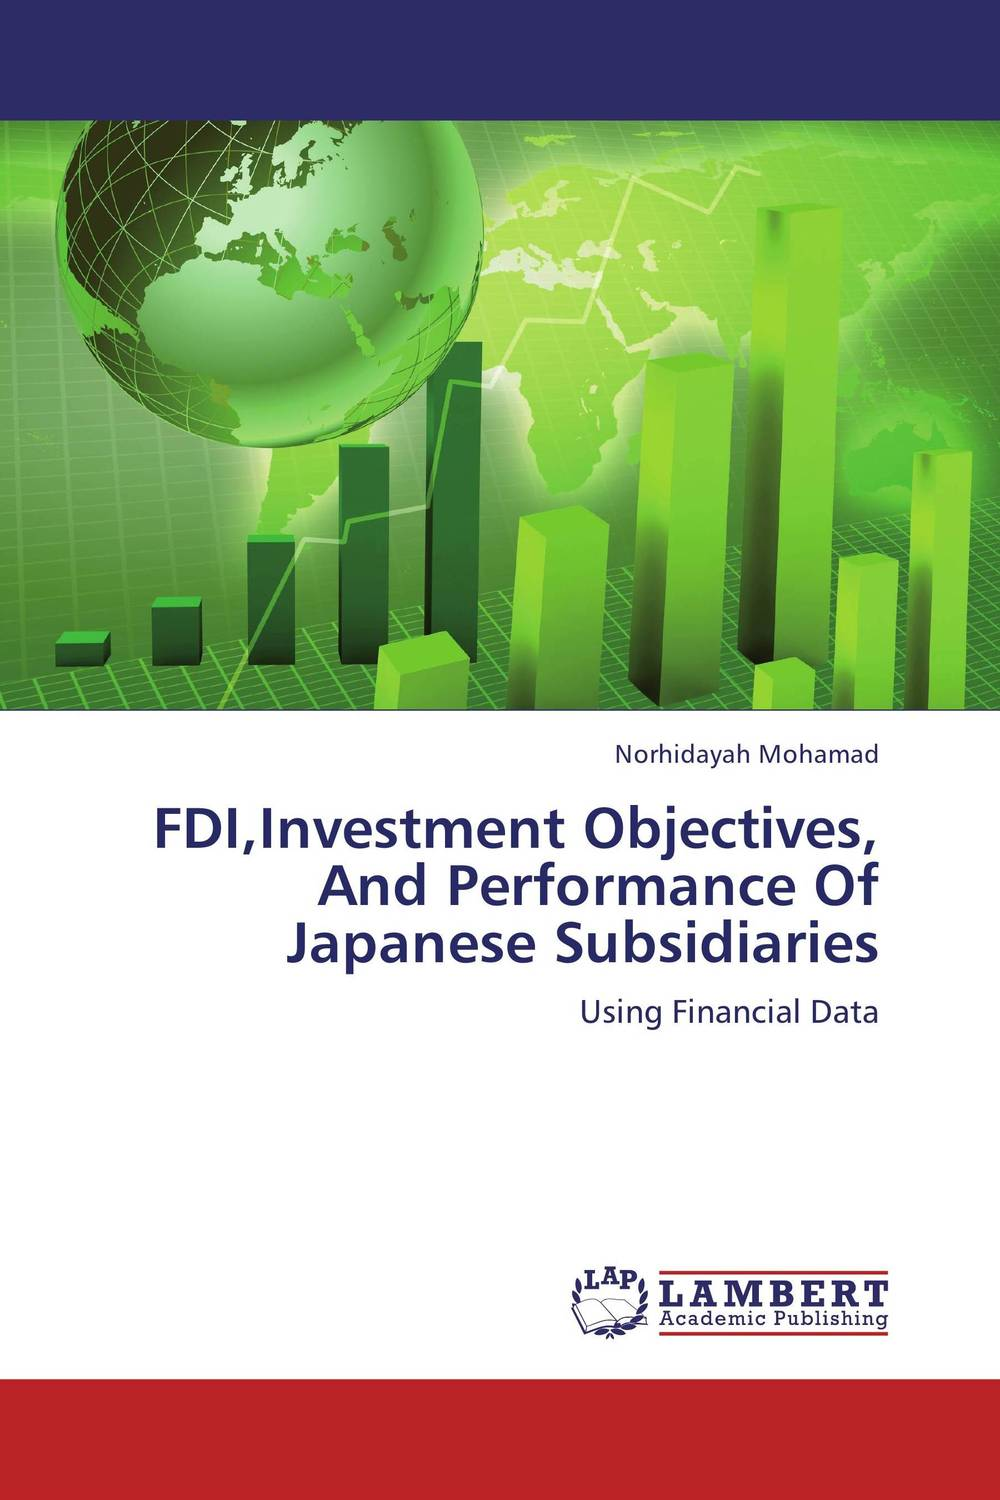 FDI,Investment Objectives, And Performance Of Japanese Subsidiaries chinese outward investment and the state the oli paradigm perspective